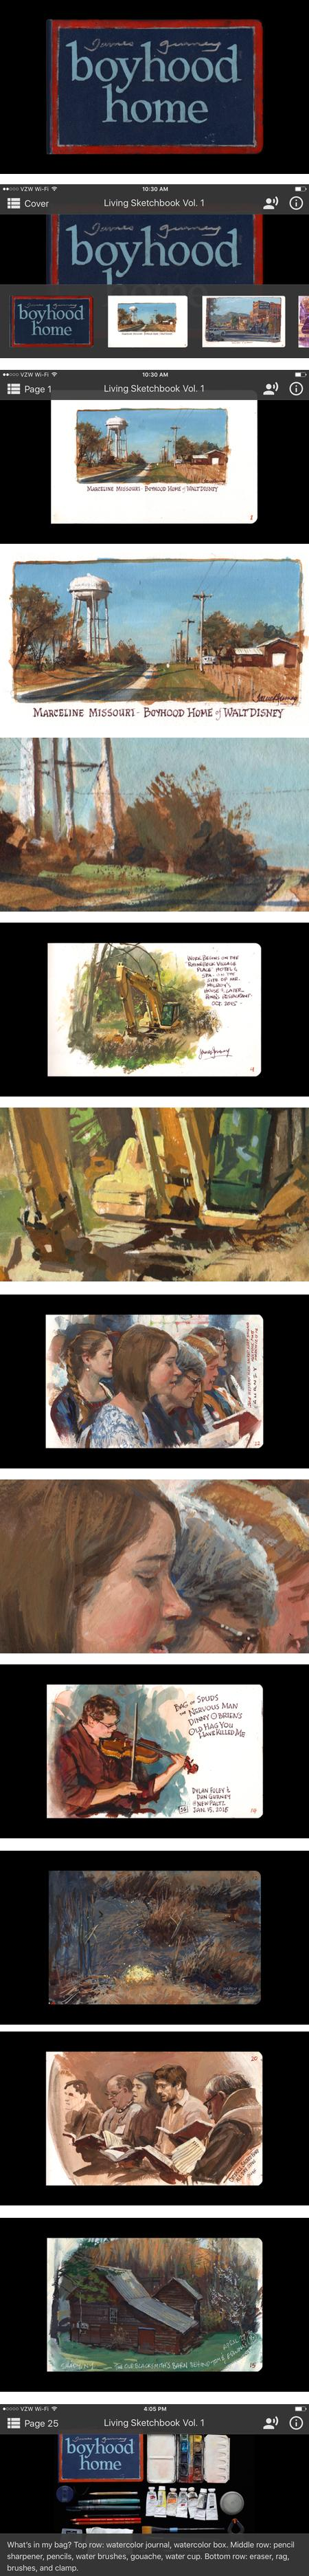 James Gurney's Living Sketchbook app